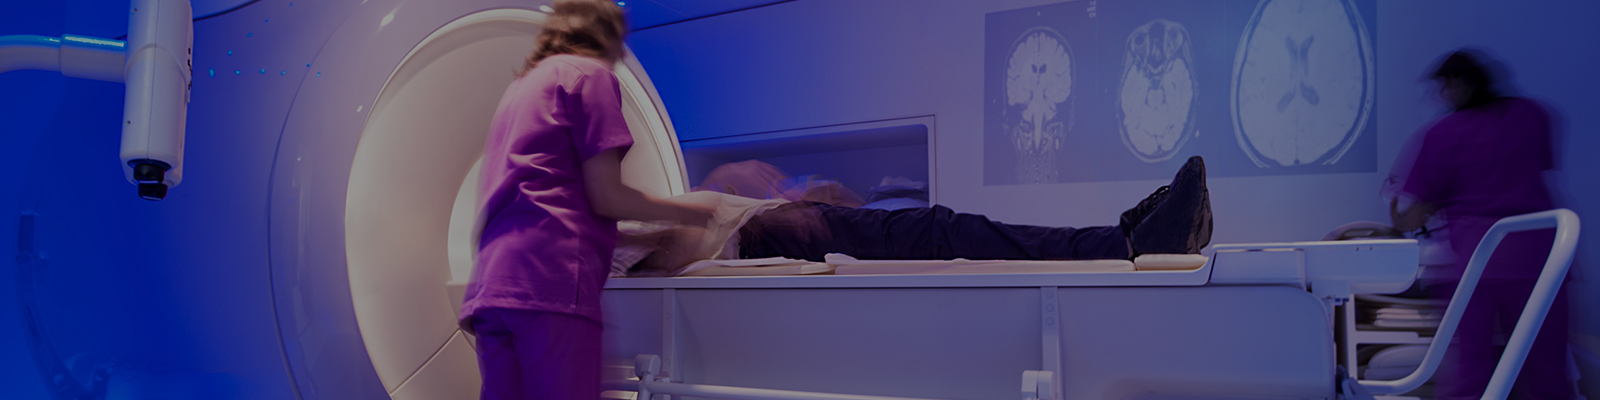 Best Radiation Therapy Bangalore